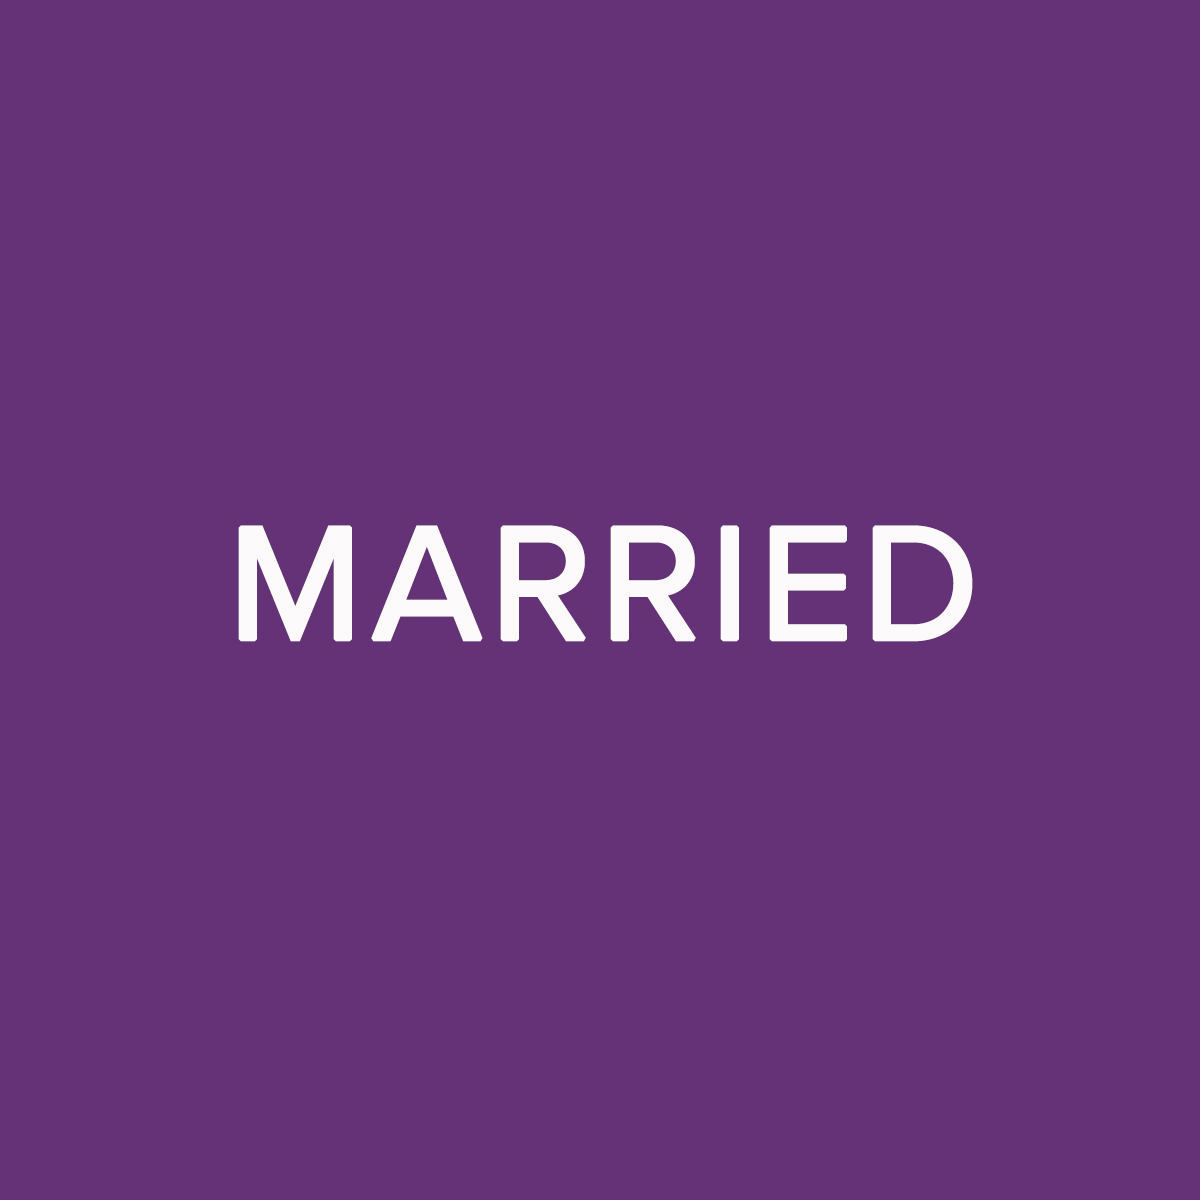 Marriage Tile.jpg